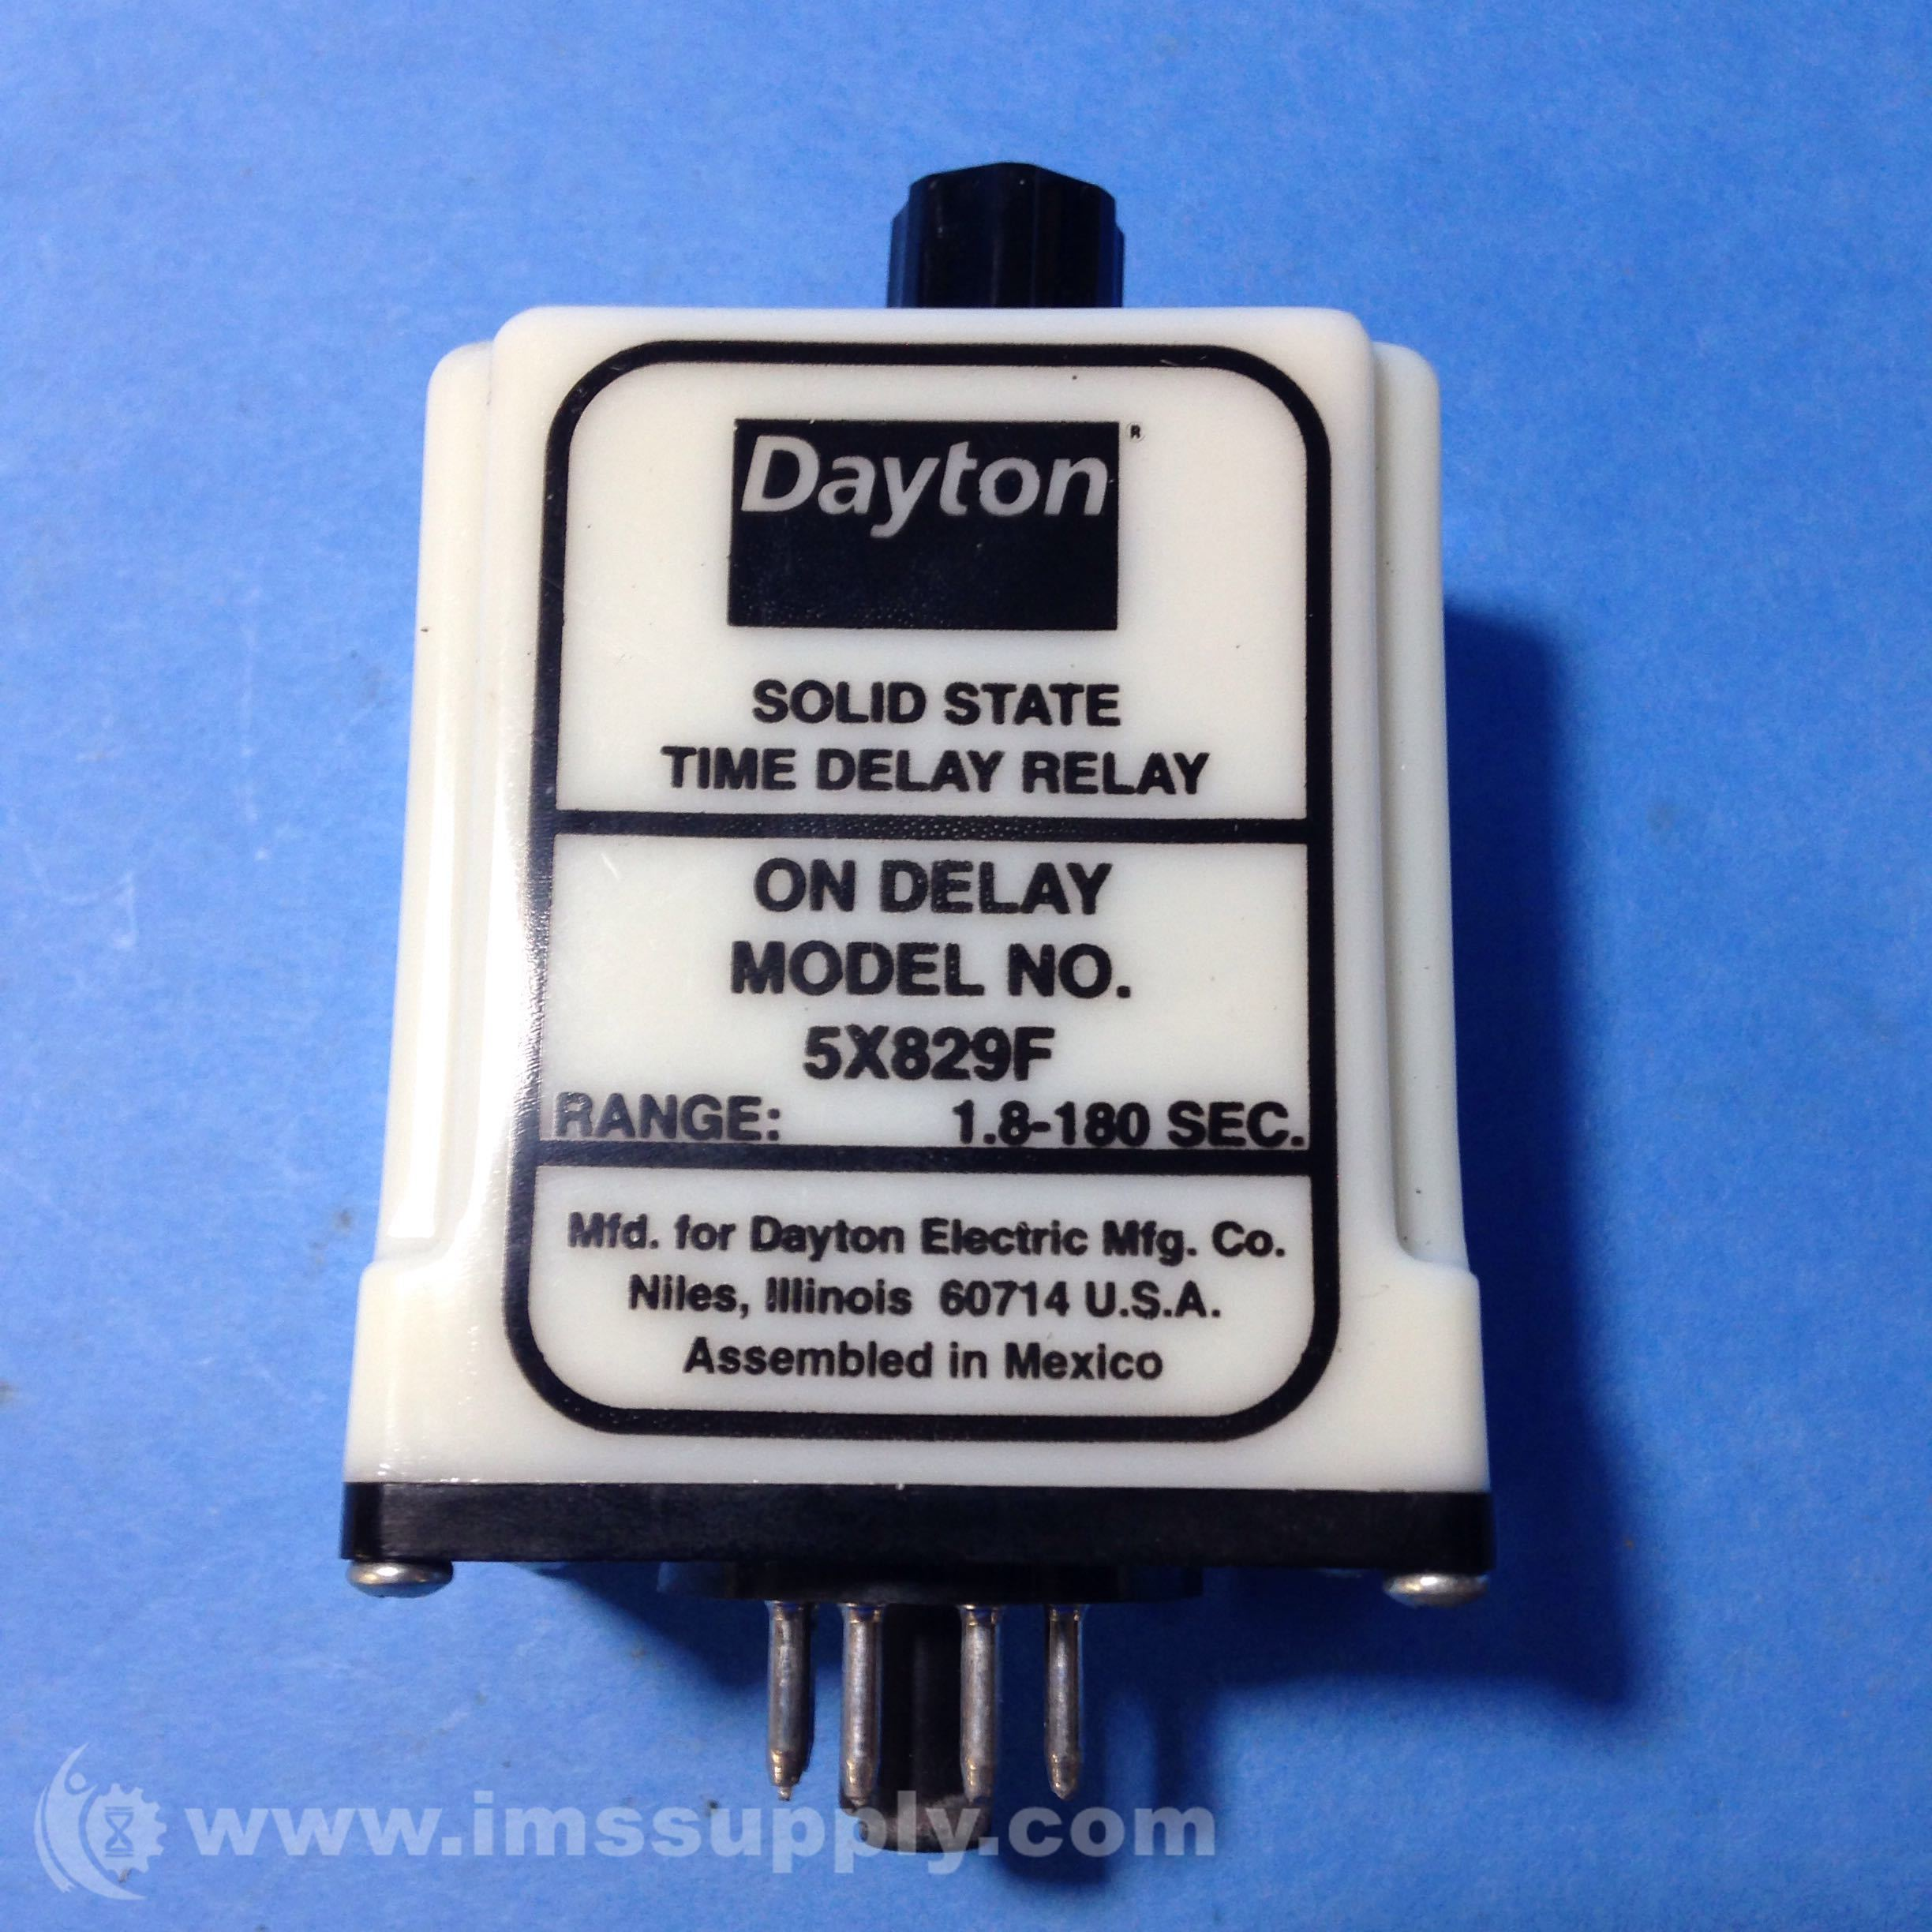 Dayton 5X829F Solid State Time Delay Relay - IMS Supply on